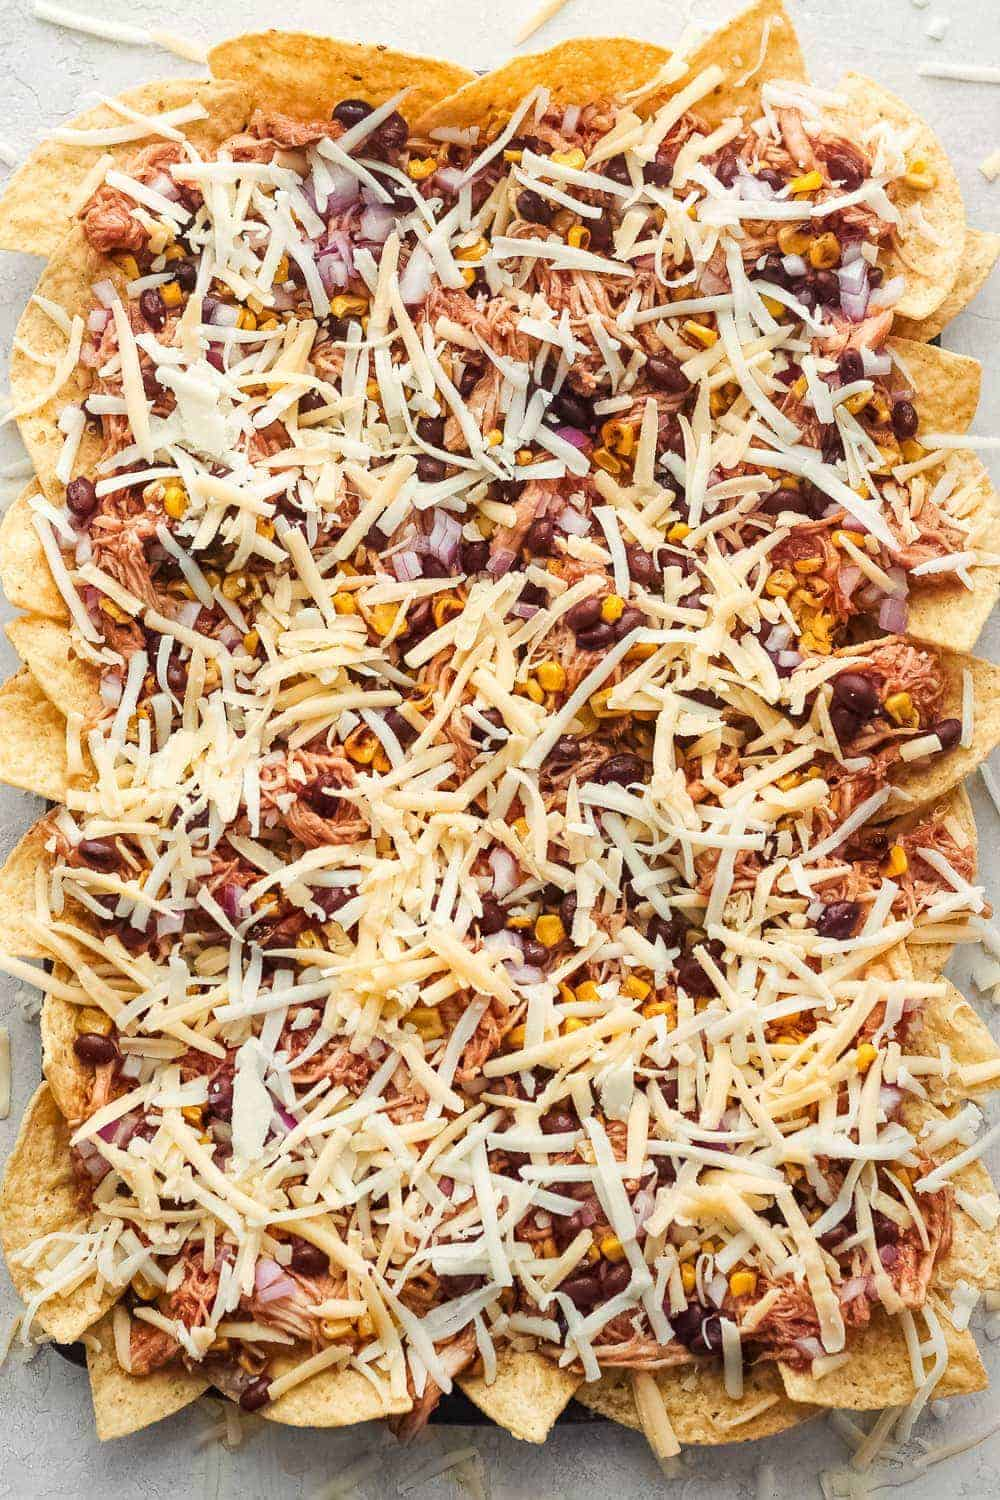 The nachos on a sheet pan before being cooked